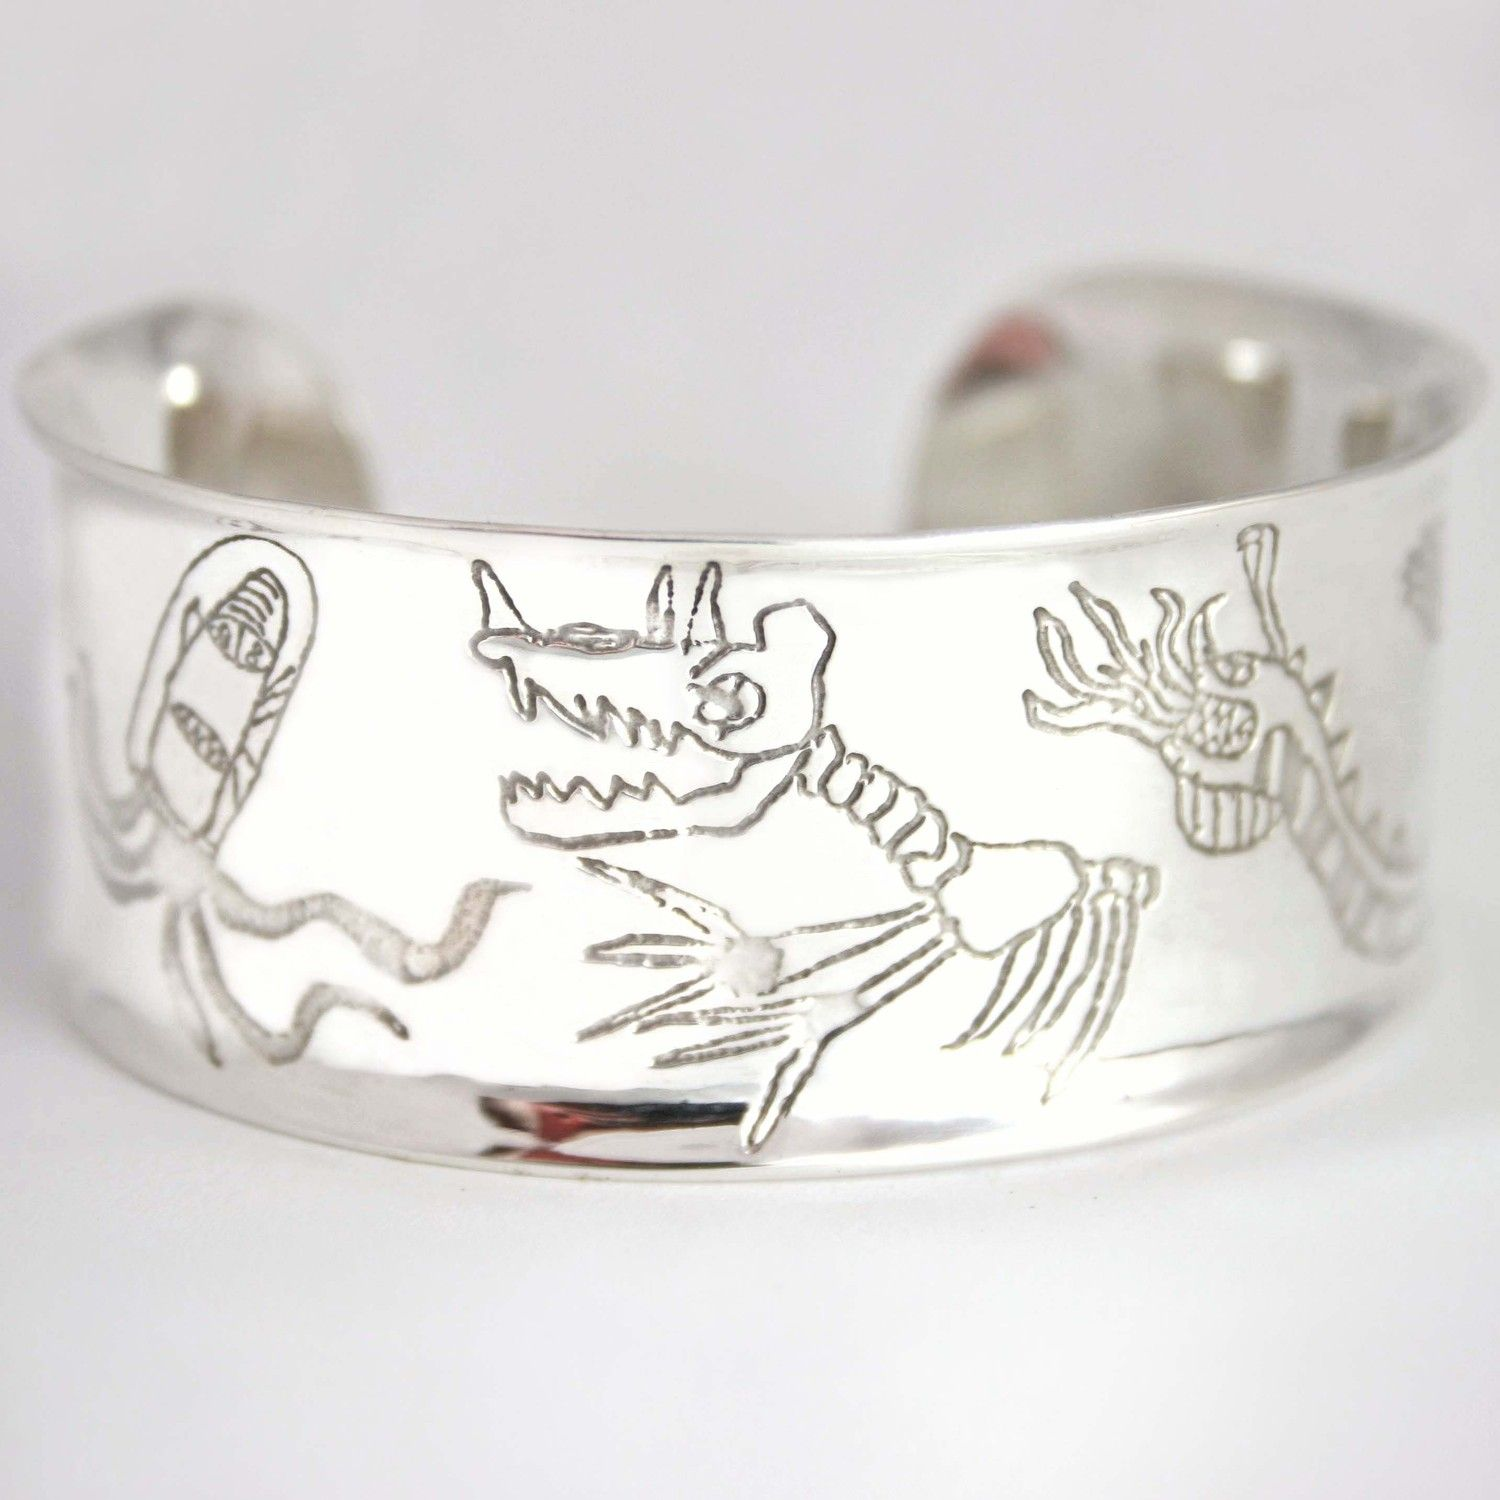 Custom listing for a personalized cuff bracelet with childus drawing